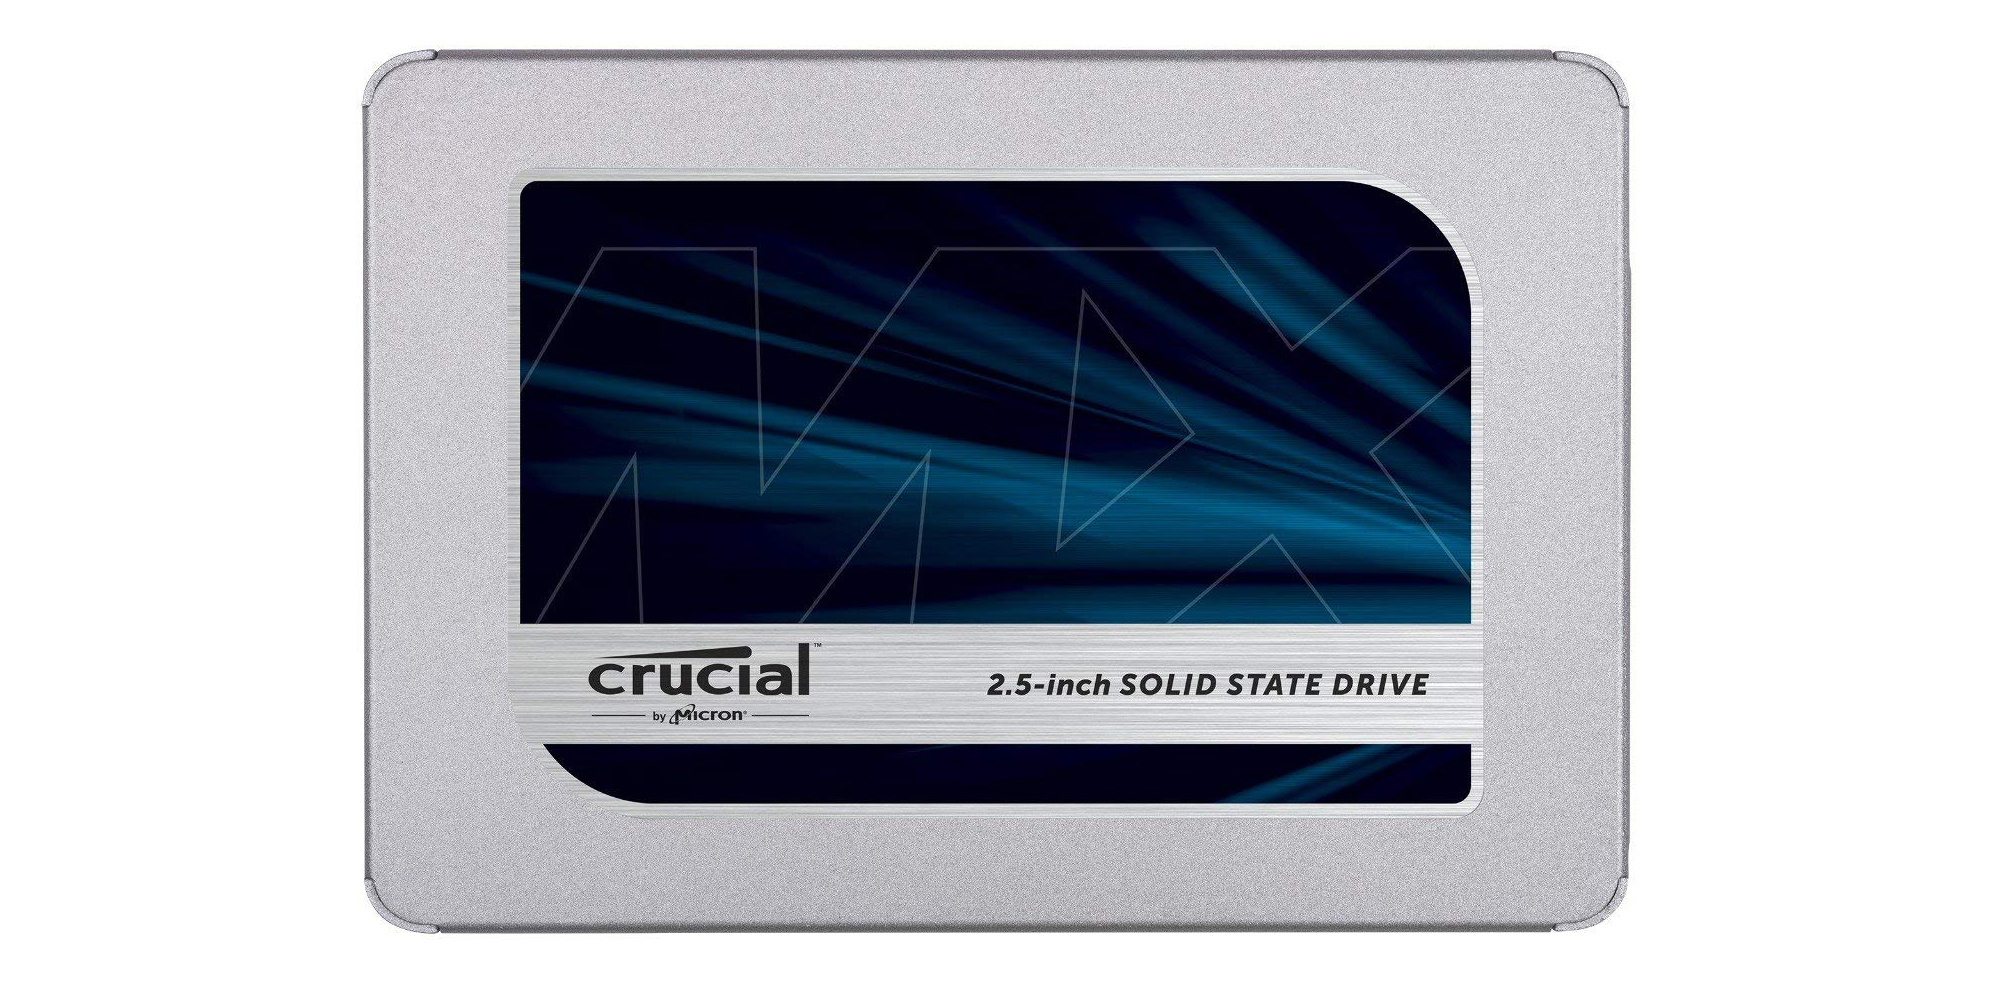 Crucial's MX500 1TB 2 5-inch SSD hits best price yet at $97